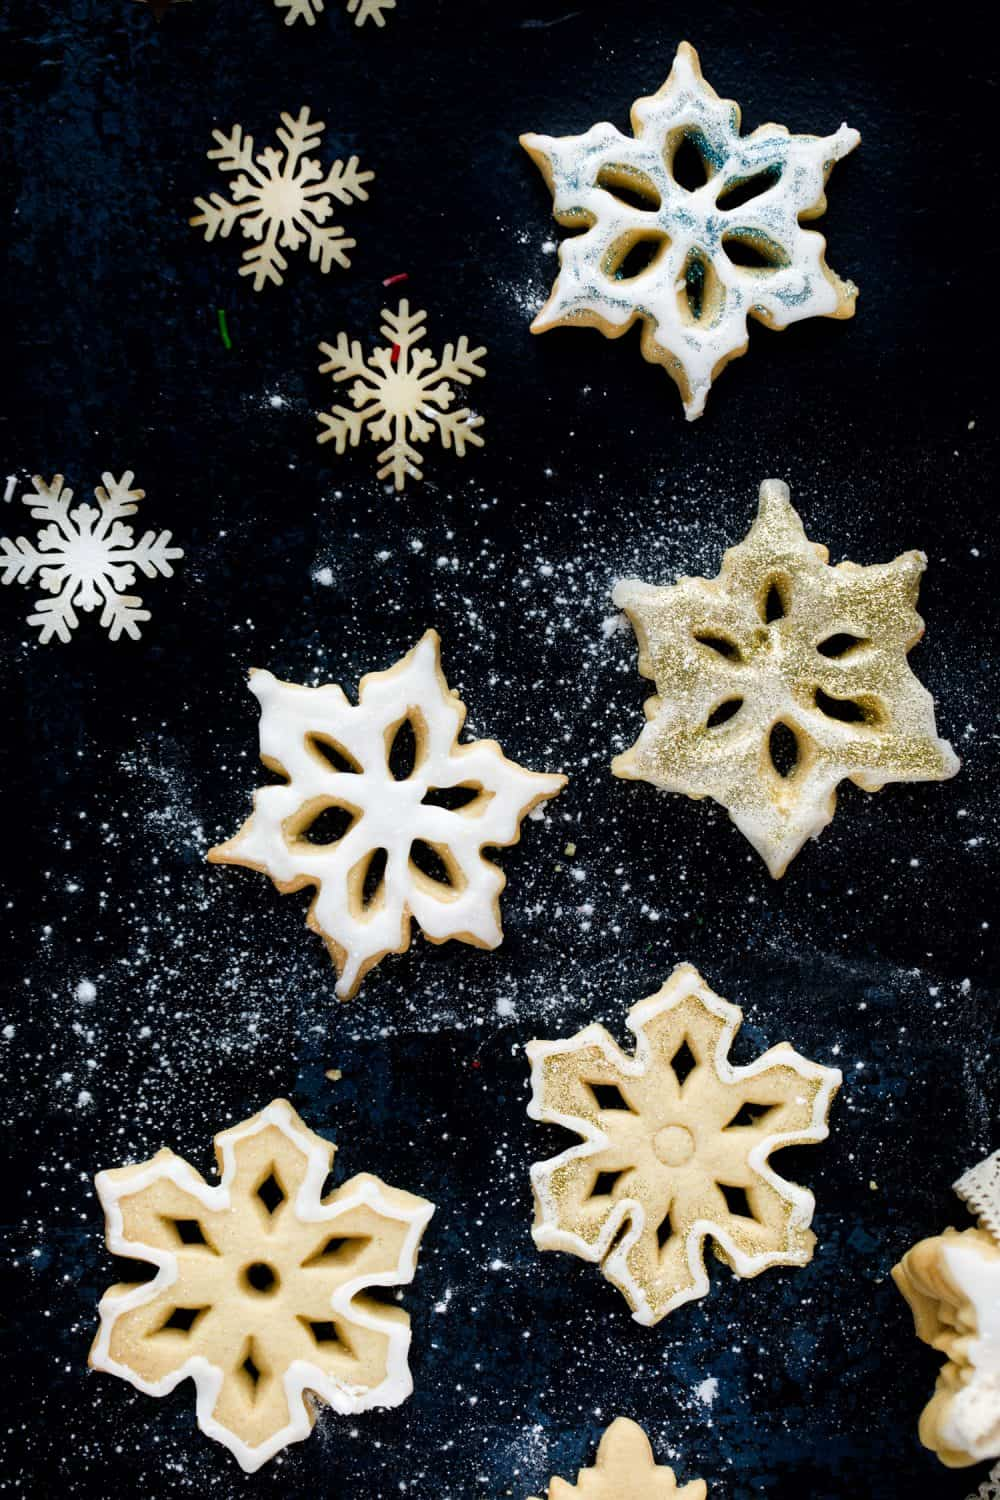 5 snowflake vanilla biscuits on a dark background